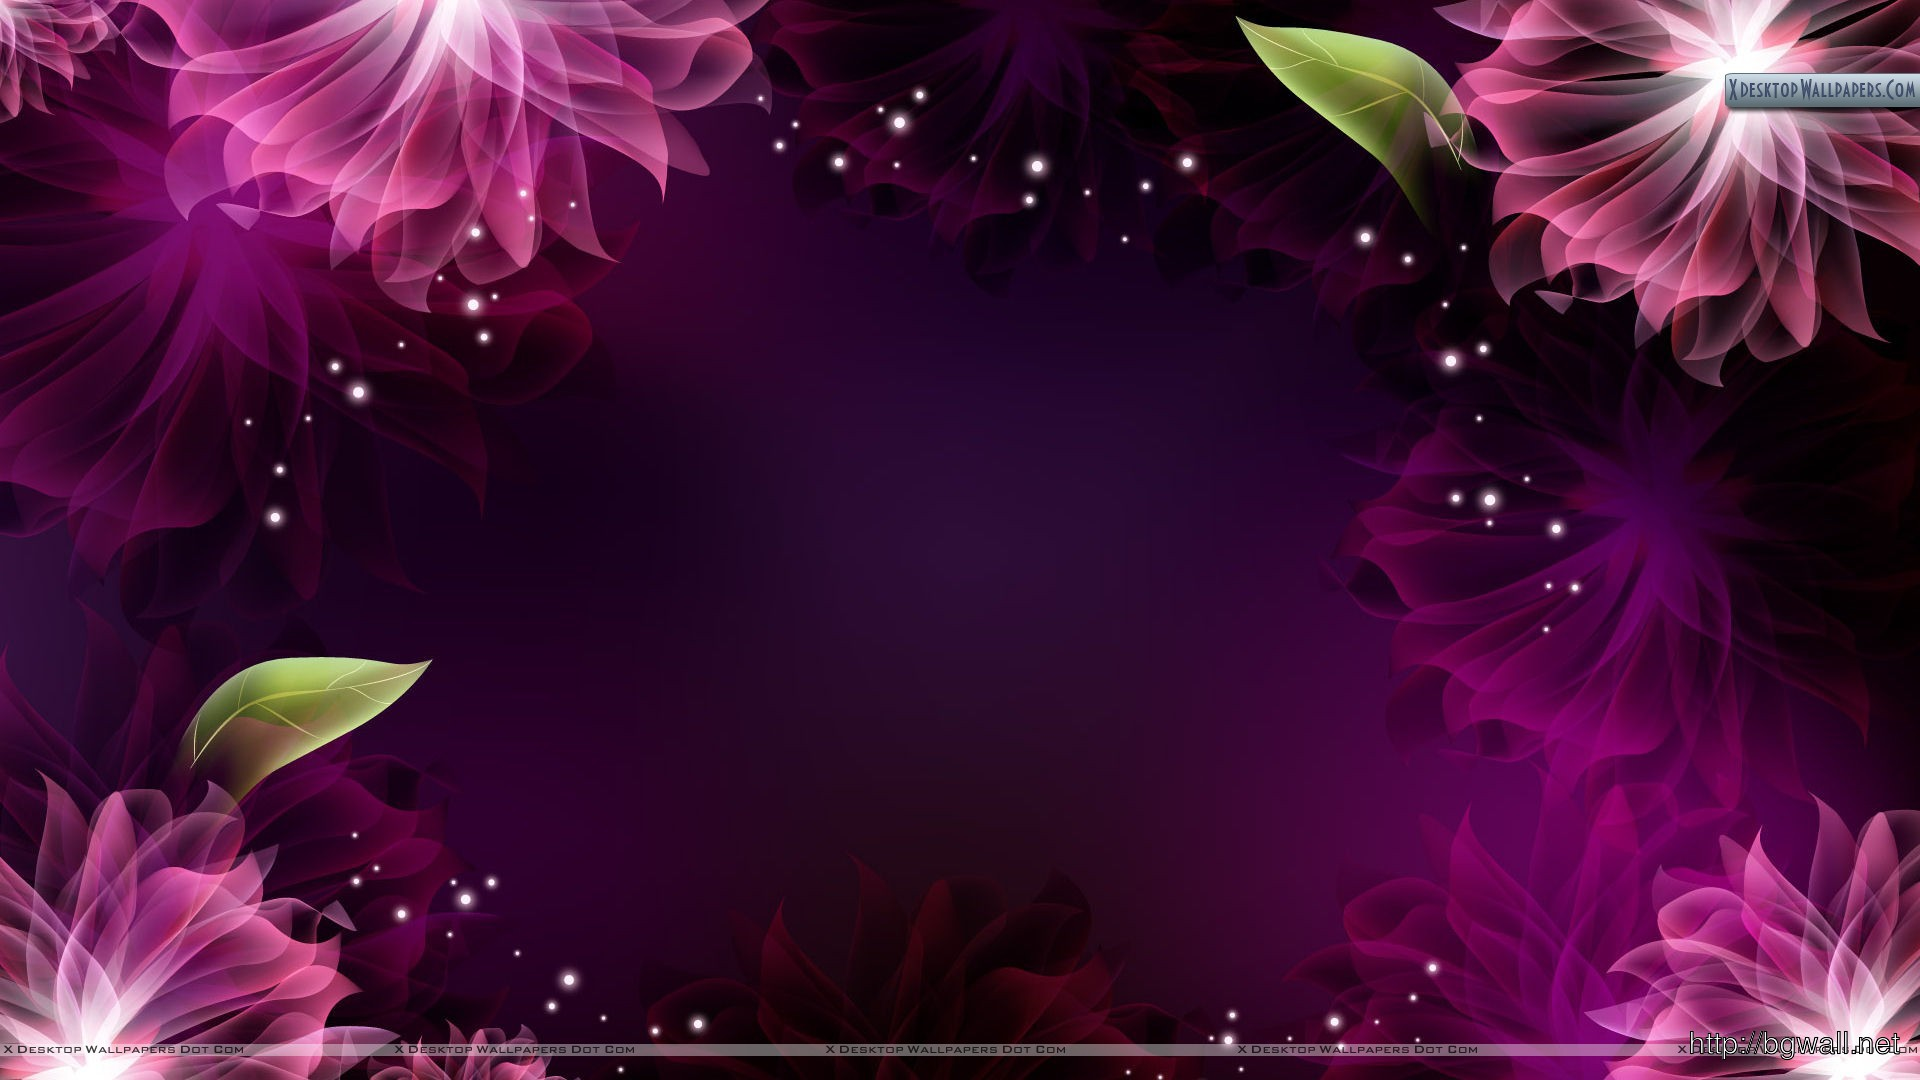 Colorful abstract flowers wallpaper background wallpaper hd colorful abstract flowers wallpaper voltagebd Gallery